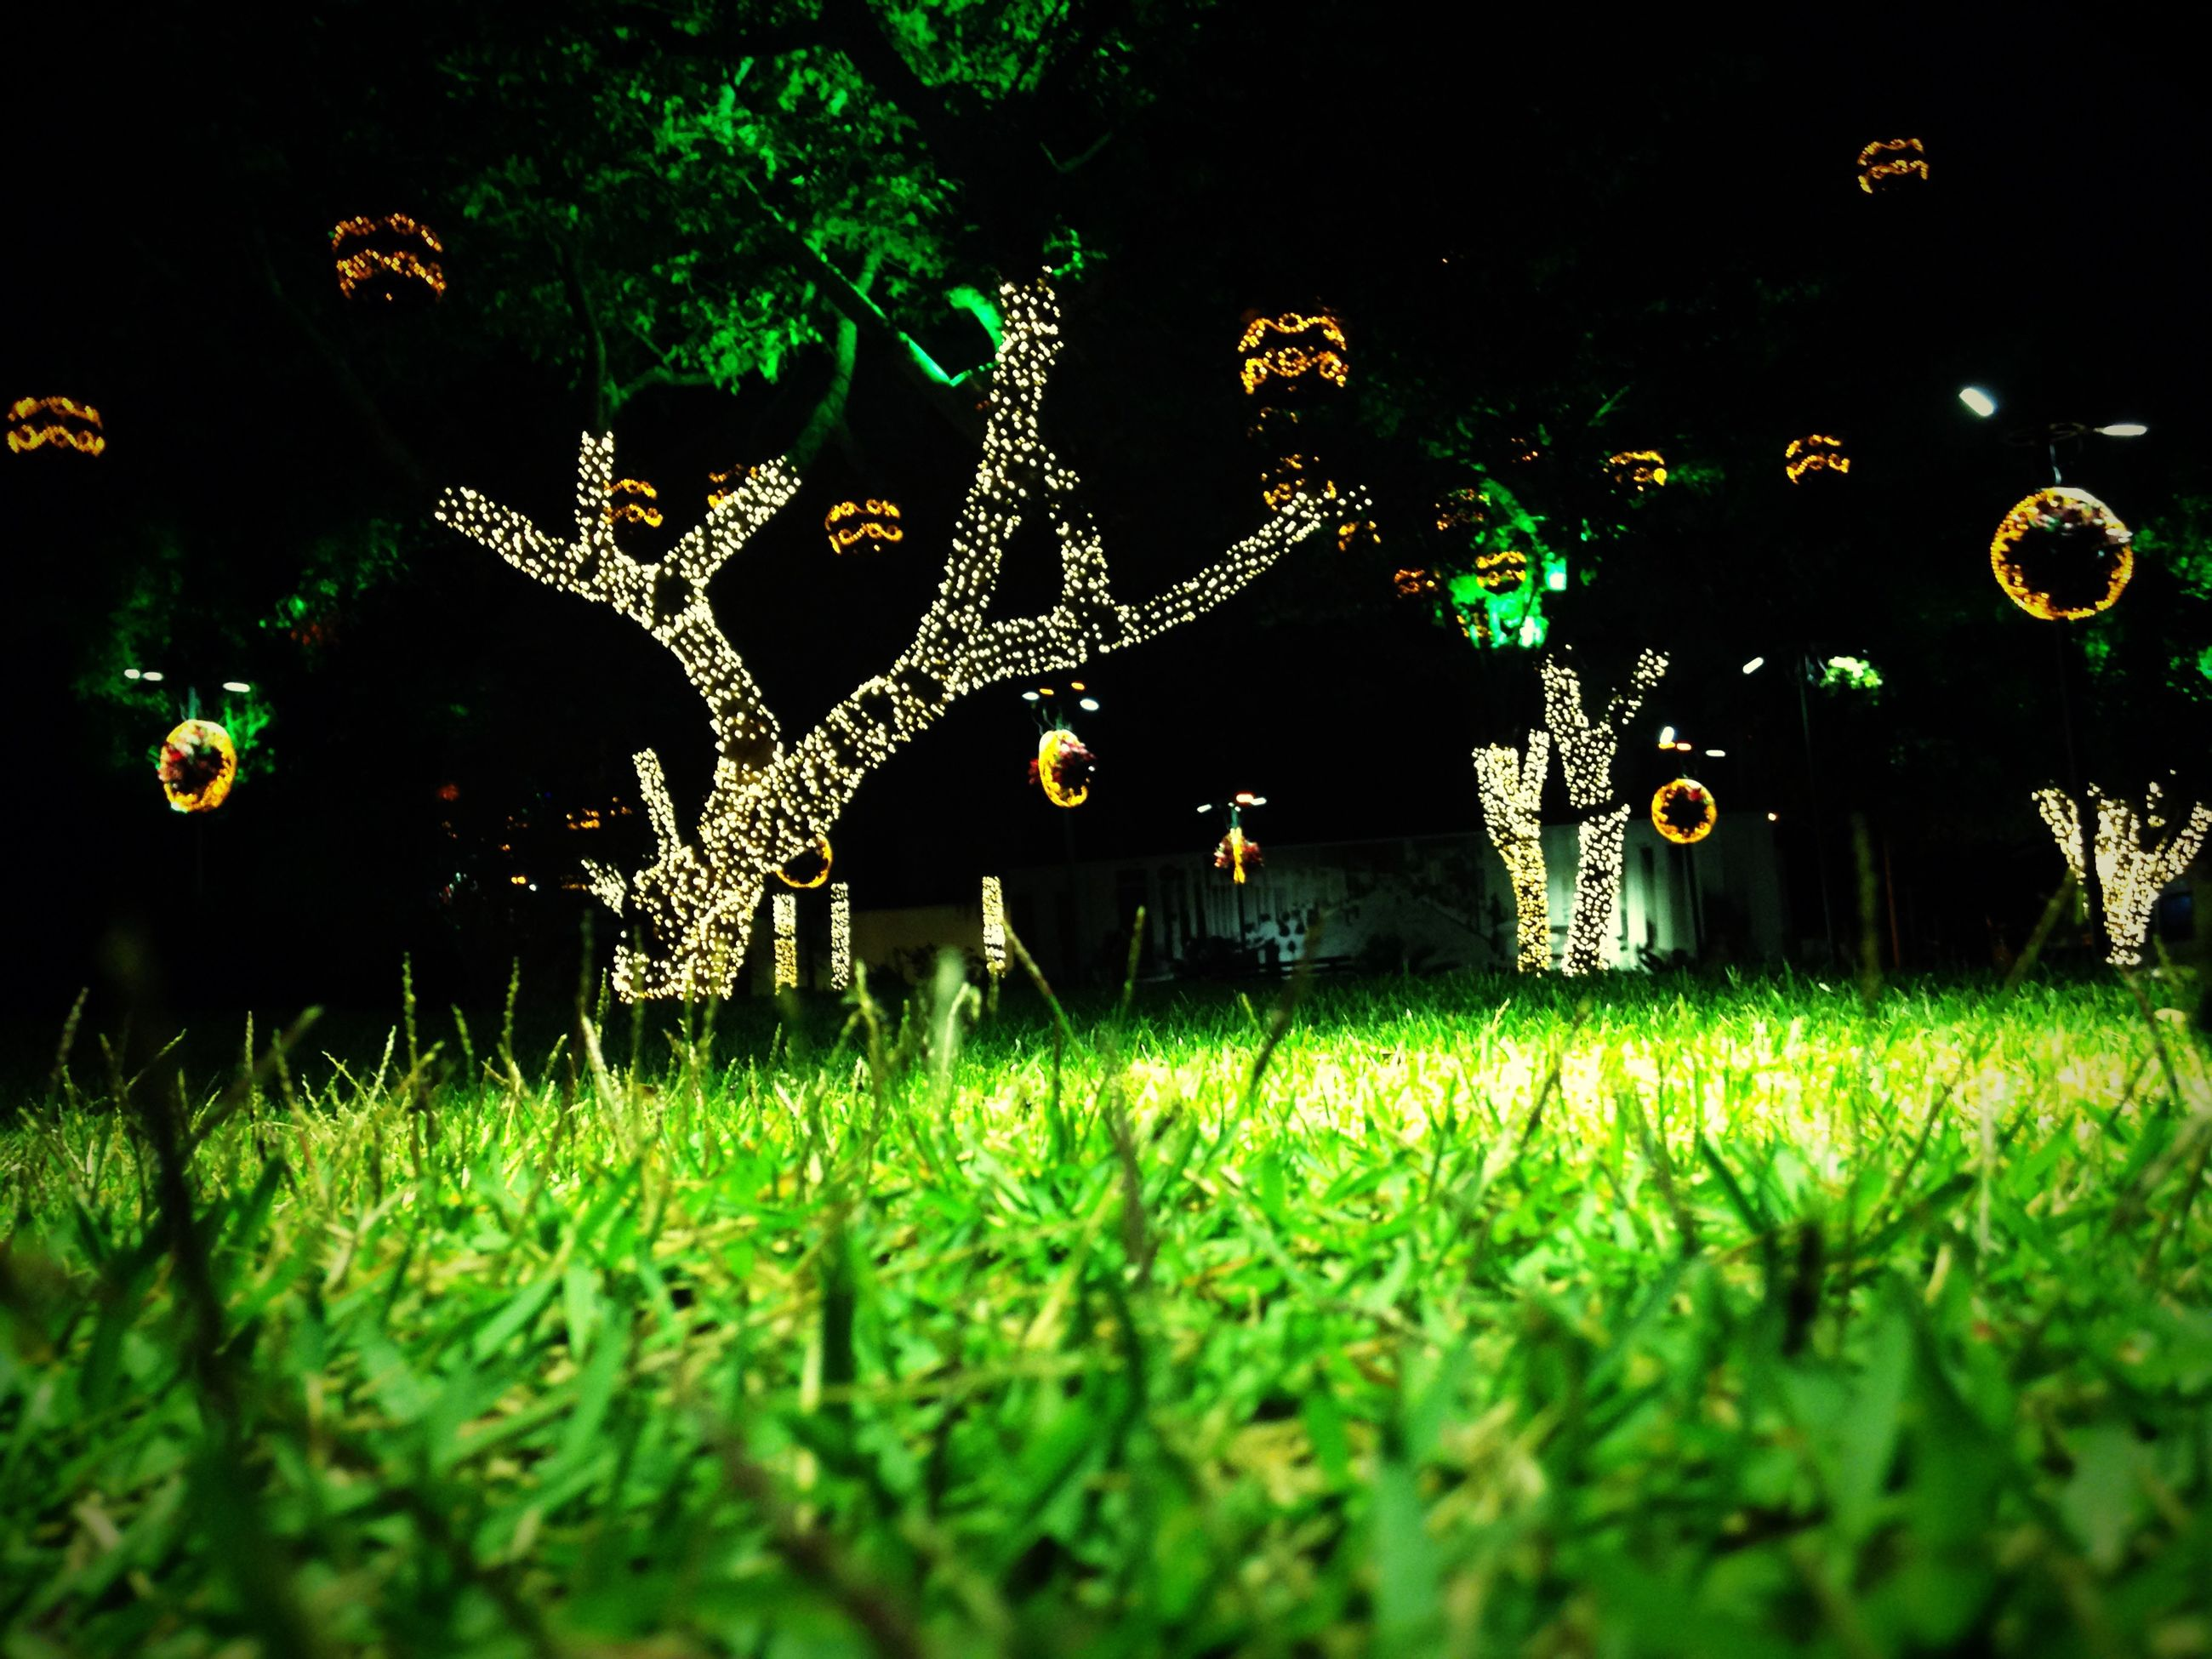 night, illuminated, surface level, grass, tree, green color, selective focus, growth, field, decoration, outdoors, tranquil scene, tranquility, scenics, no people